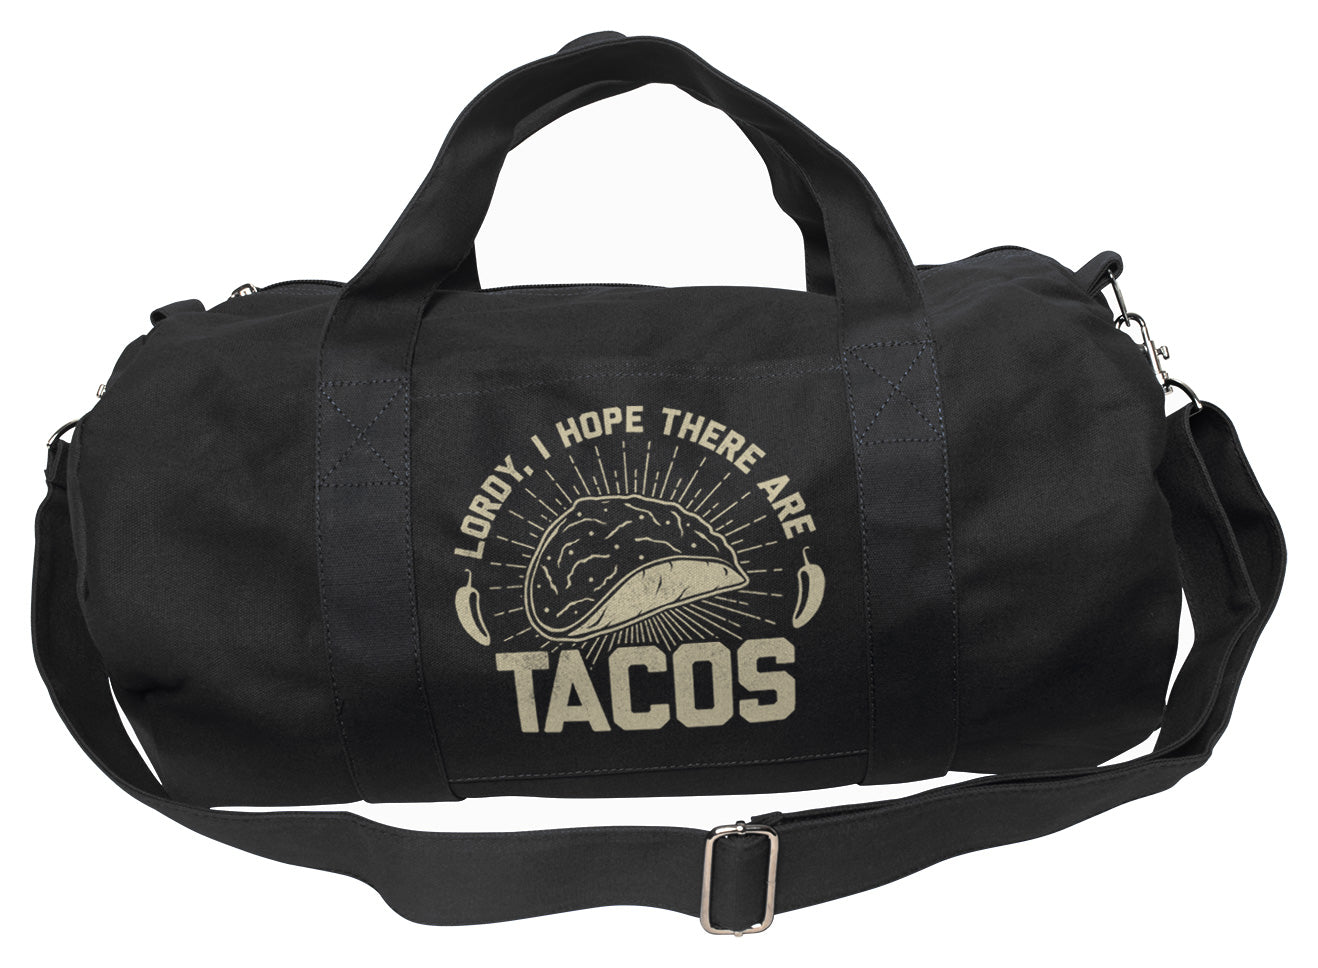 Lordy I Hope There Are Tacos Duffel Bag